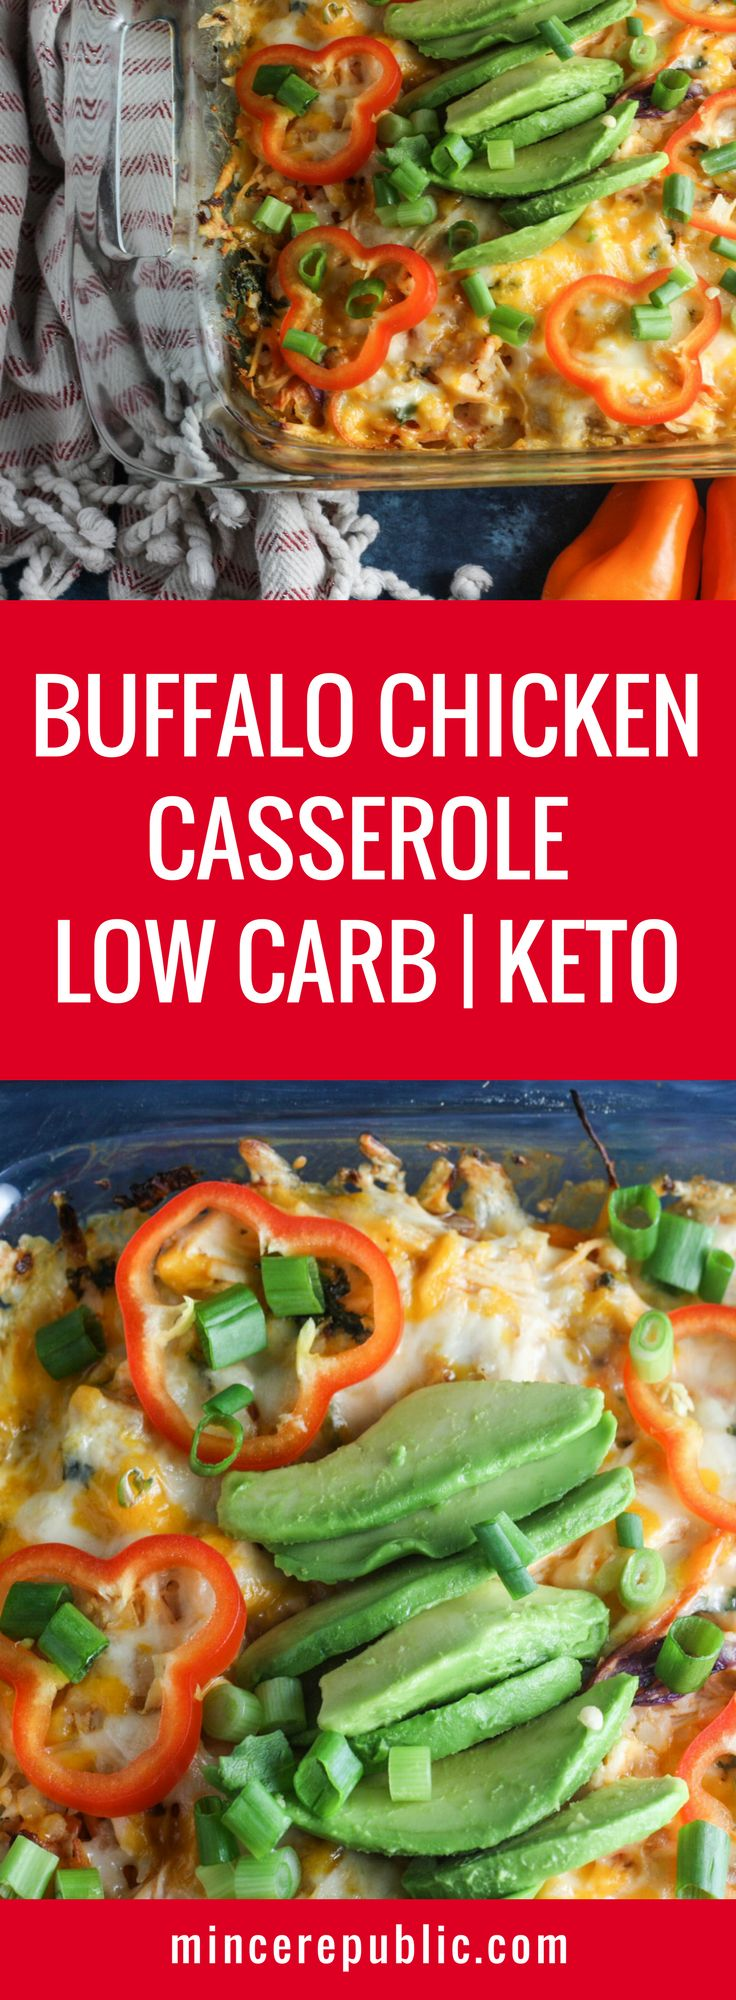 Buffalo Chicken Casserole recipe | The best Buffalo Chicken Casserole recipe! | low carb, ketogenic | mincerepublic.com